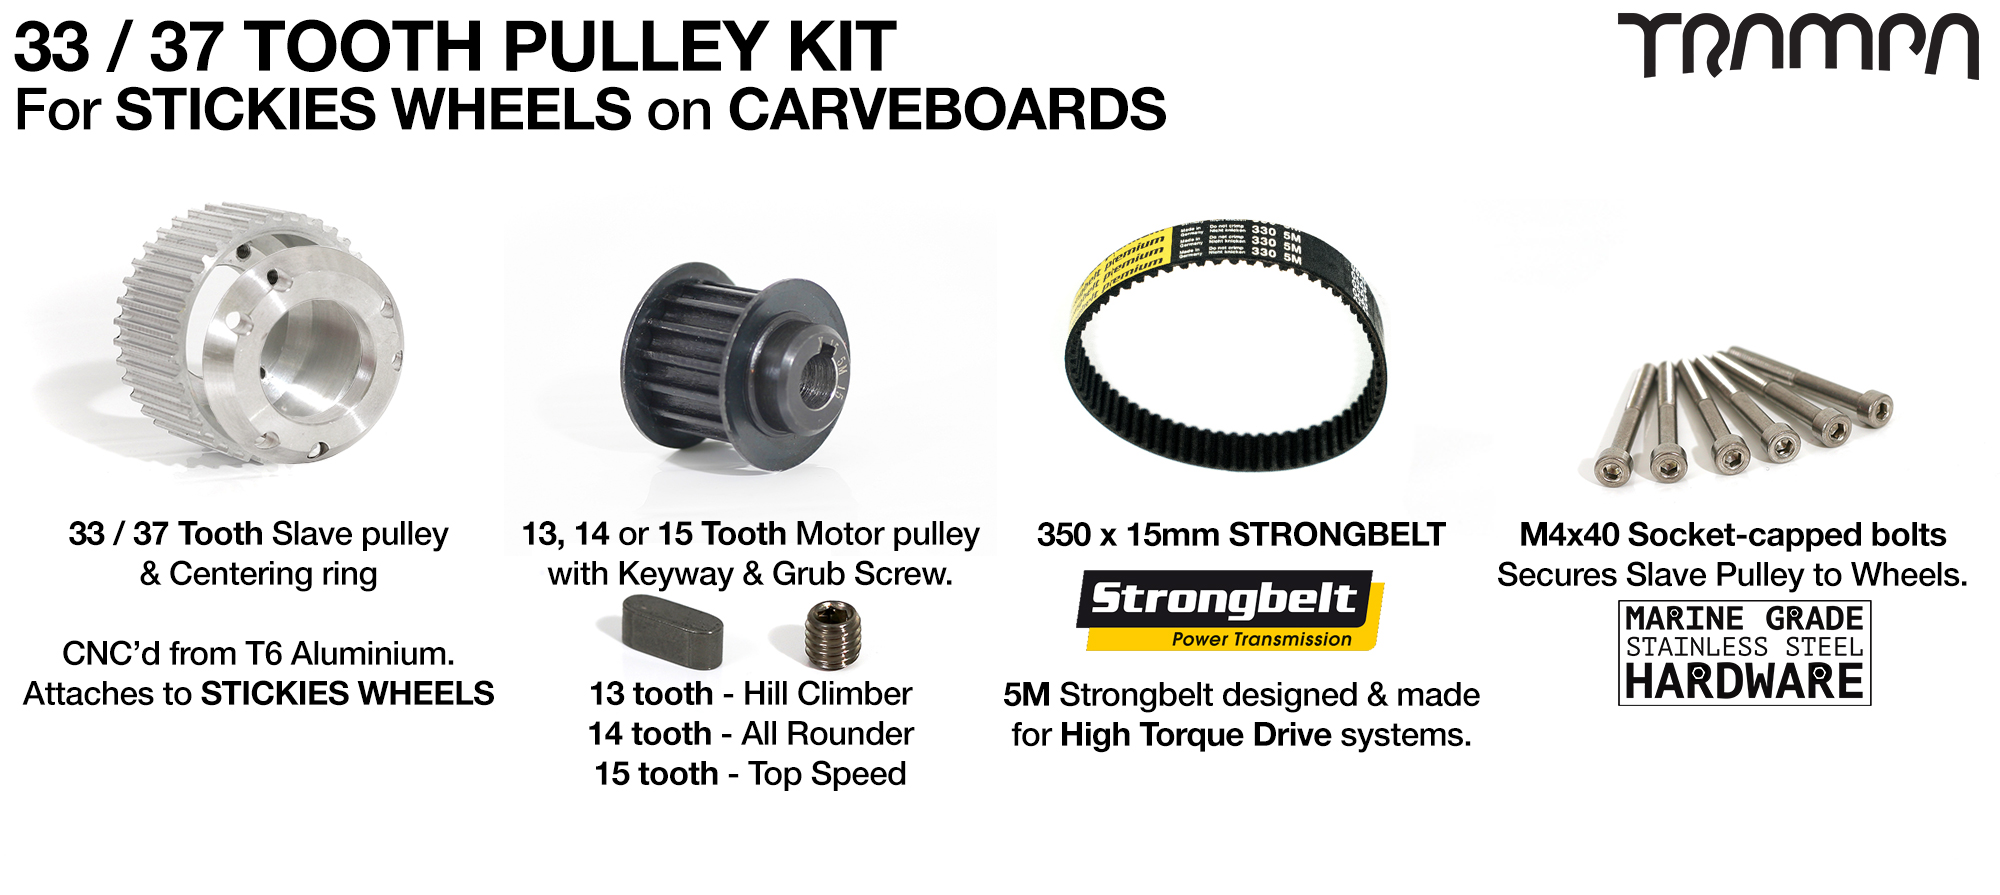 STREET CARVER 33 or 37 Tooth Pulley Kit with 330mm x 15mm Belt for STICKIES Wheels